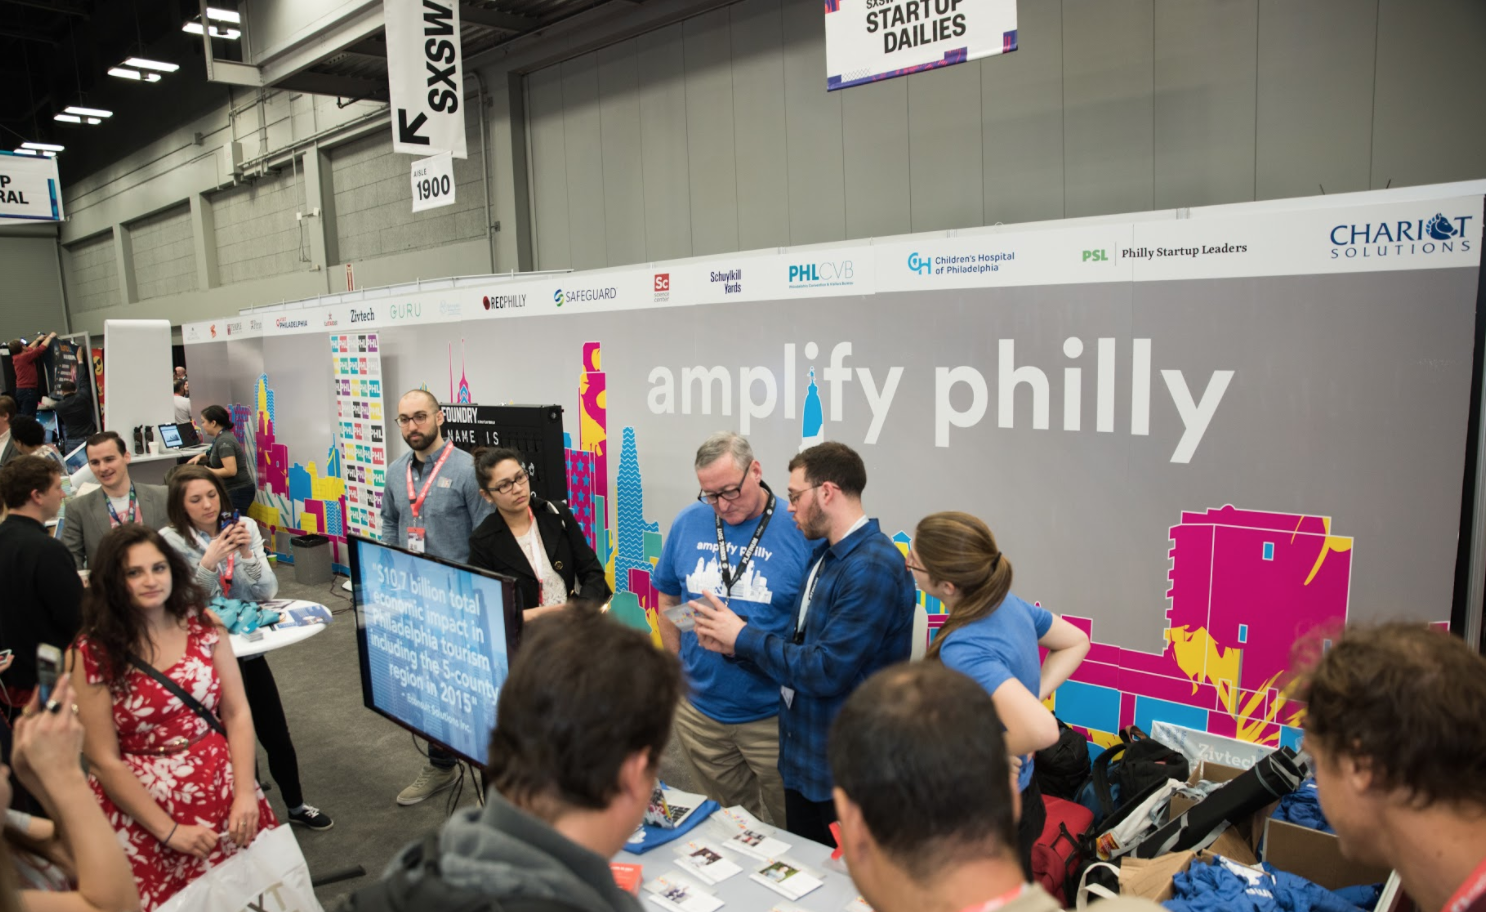 A pic of the scene at the Amplify Philly booth at SXSW